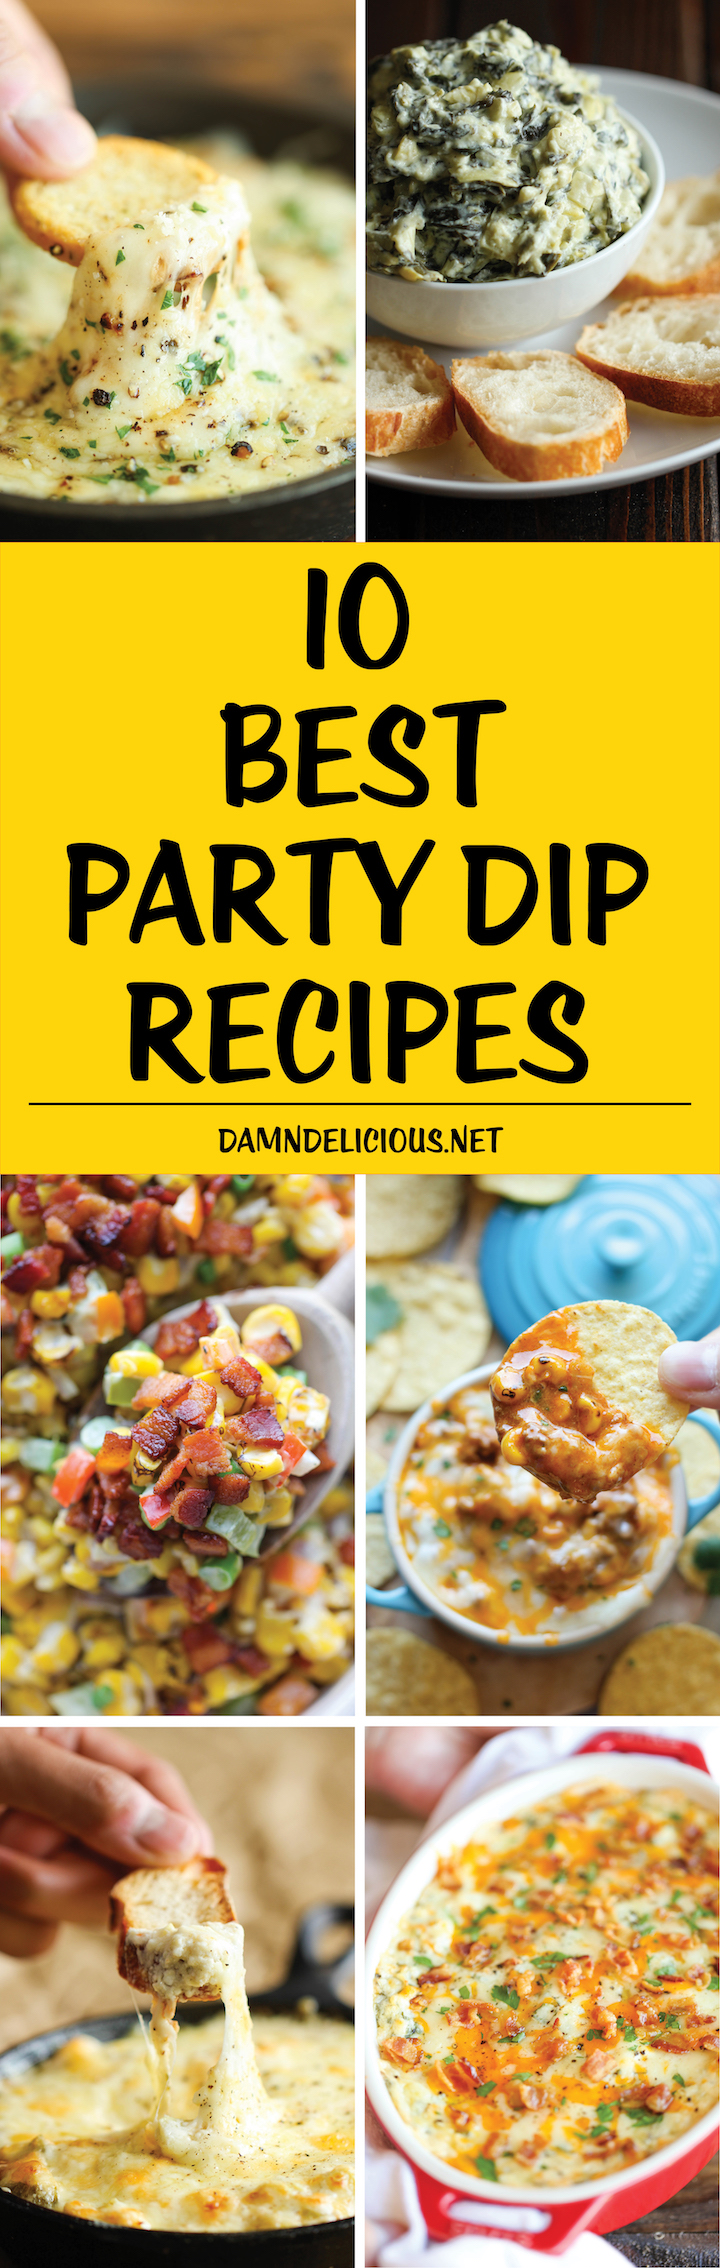 10 Best Party Dip Recipes Damn Delicious